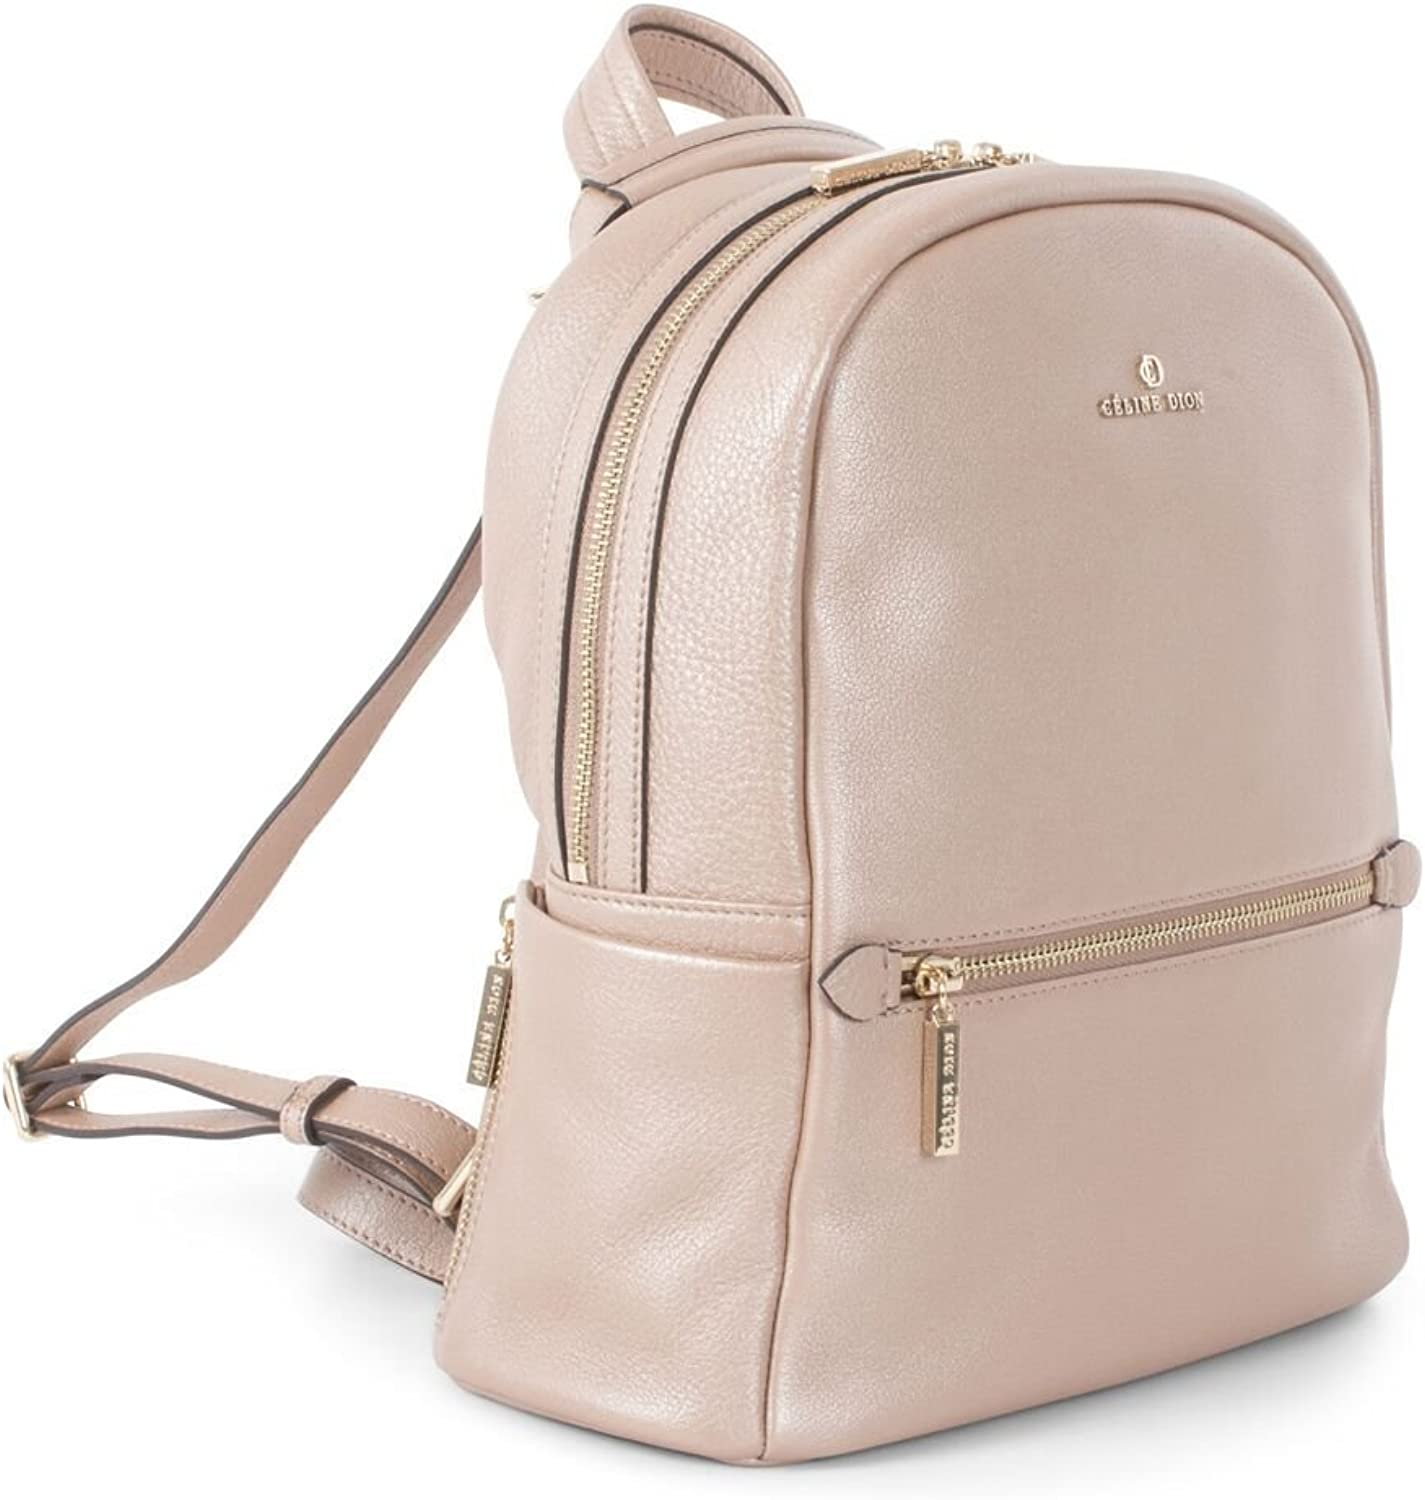 Céline Dion Adagio Backpack Leather (pinkgold)